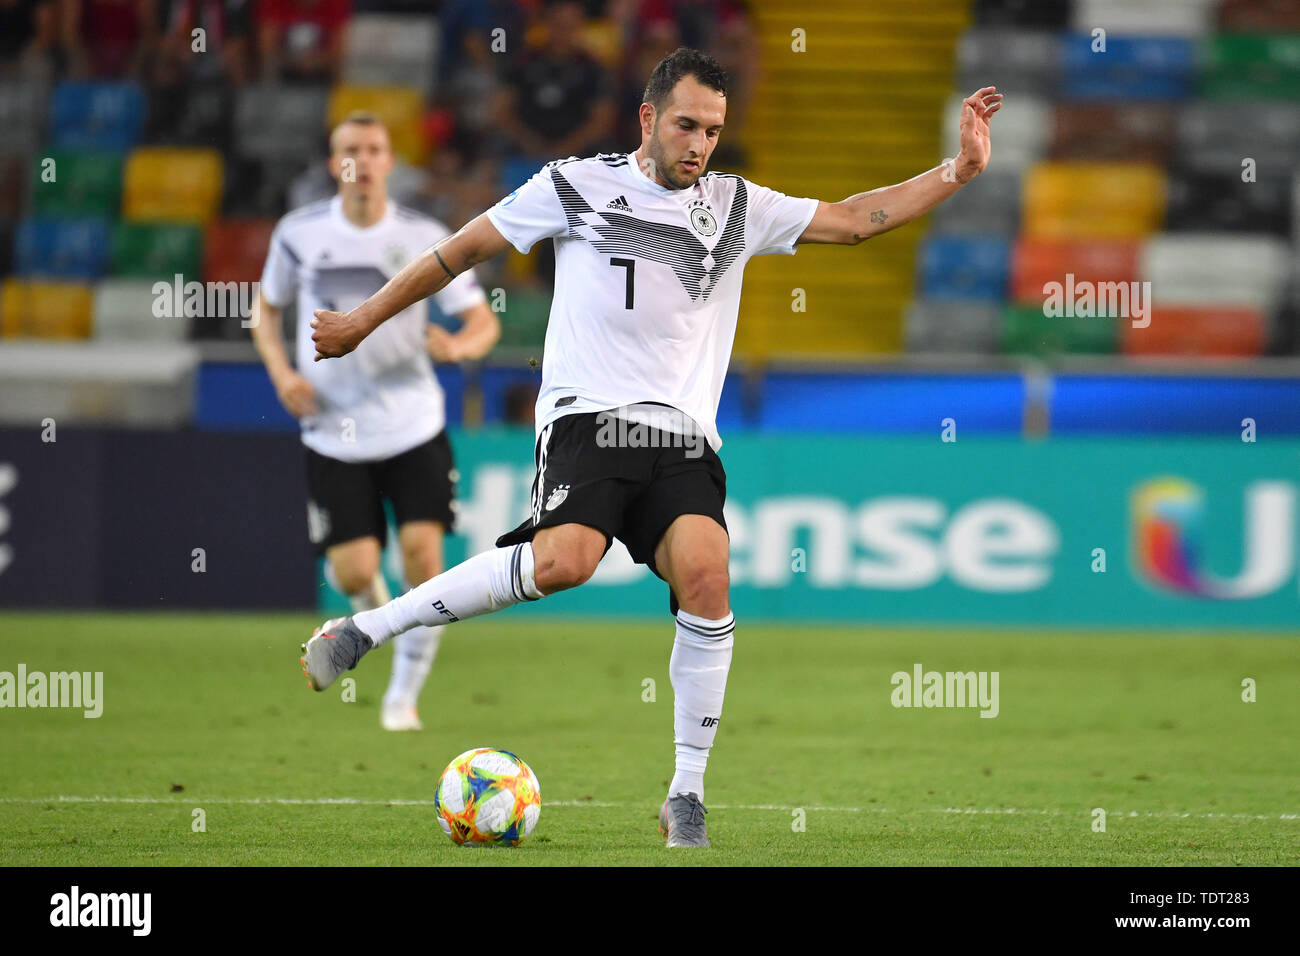 Udine, Italien. 17th June, 2019. Levin OEZTUNALI (GER), Action, Single Action, Frame, Cut Out, Full Body, Whole Figure. Germany (GER) -Daenemark (DEN) 3-1, on 17.06.2019 Stadio Friuli Udine. Football U-21, UEFA Under21 European Championship in Italy/SanMarino from 16.-30.06.2019. | Usage worldwide Credit: dpa/Alamy Live News - Stock Image